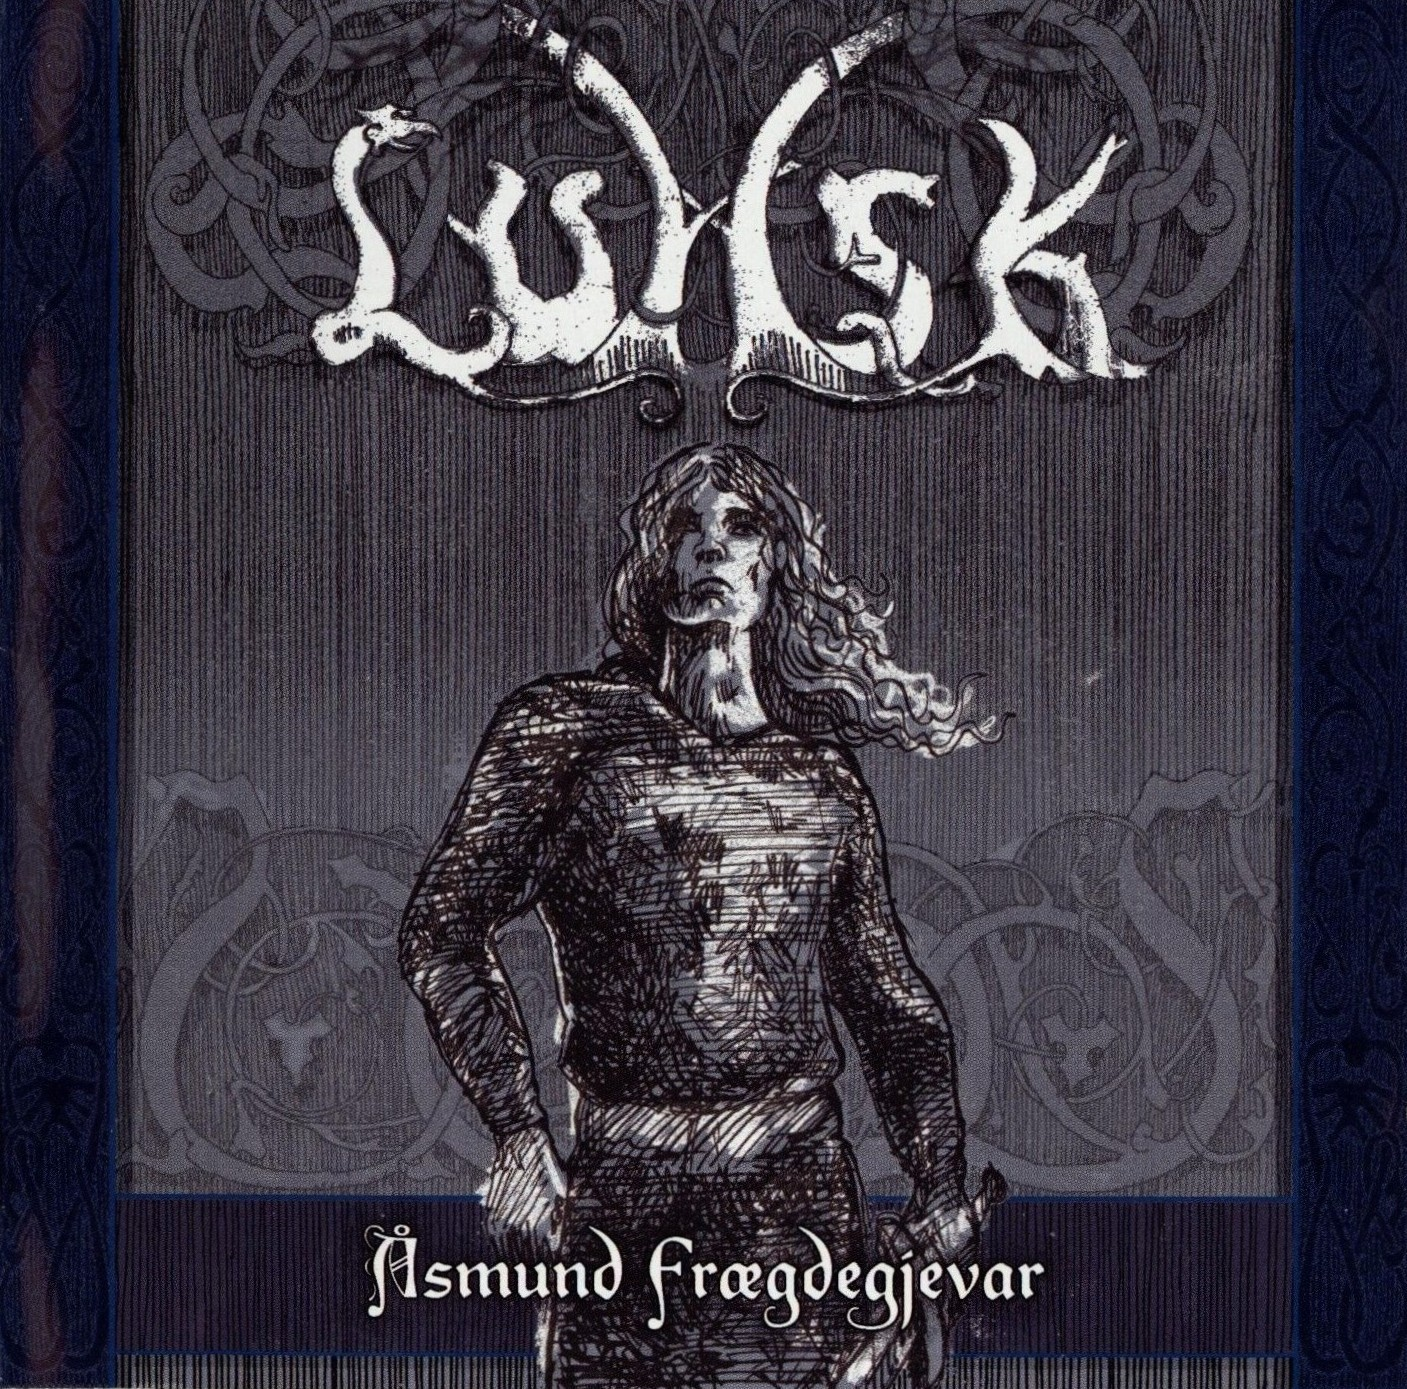 Retro Reviews: Lumsk – Åsmund frægdegjevar